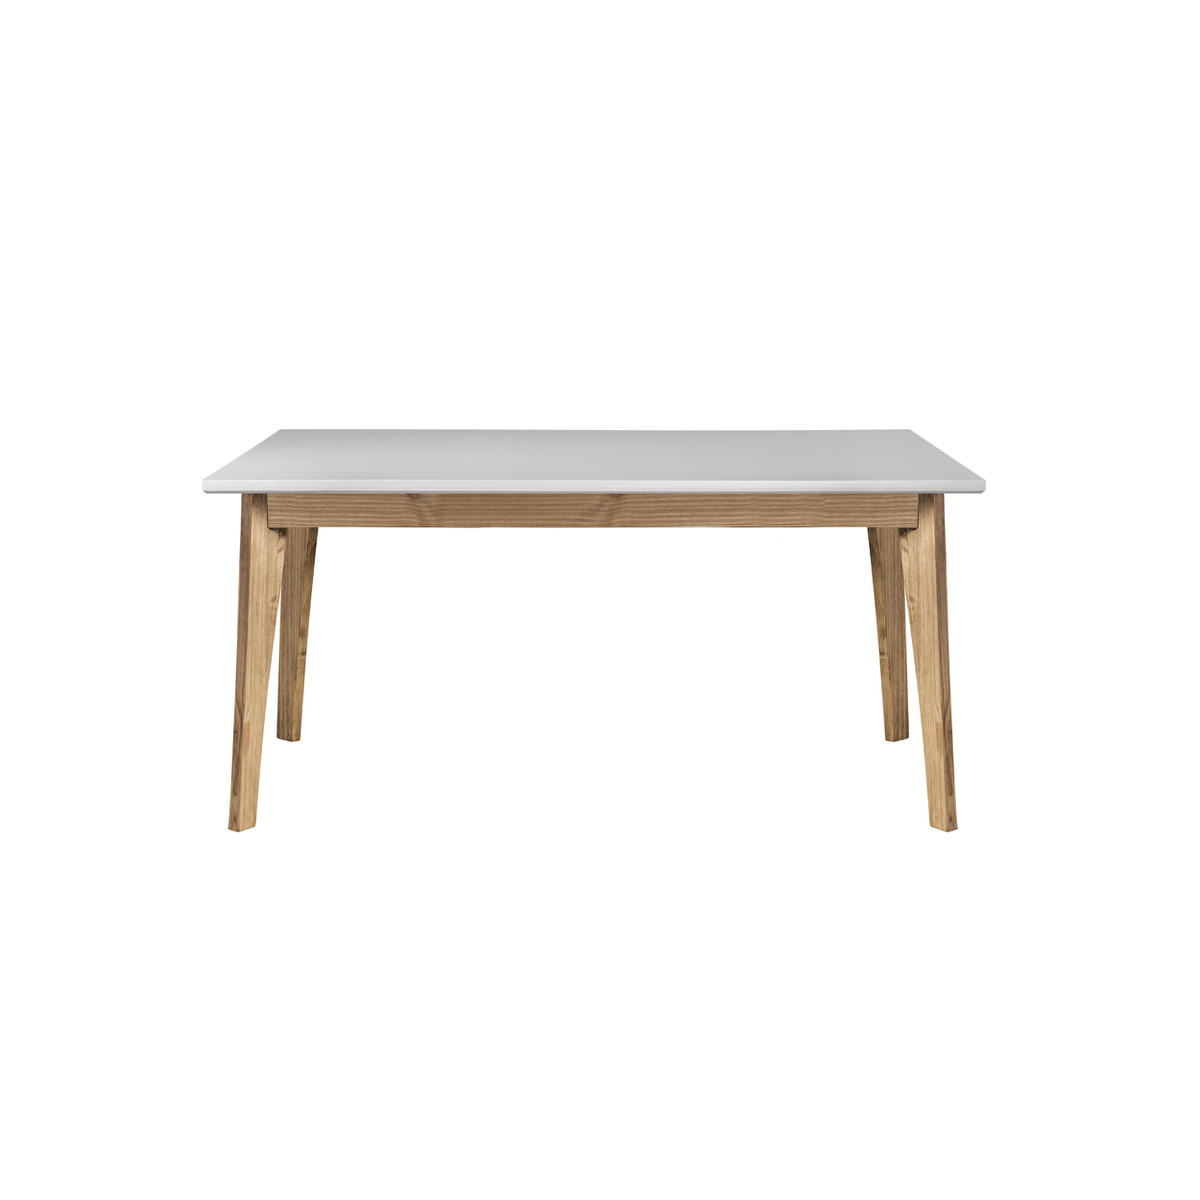 Featured Photo of Rustic Mid Century Modern 6 Seating Dining Tables In White And Natural Wood